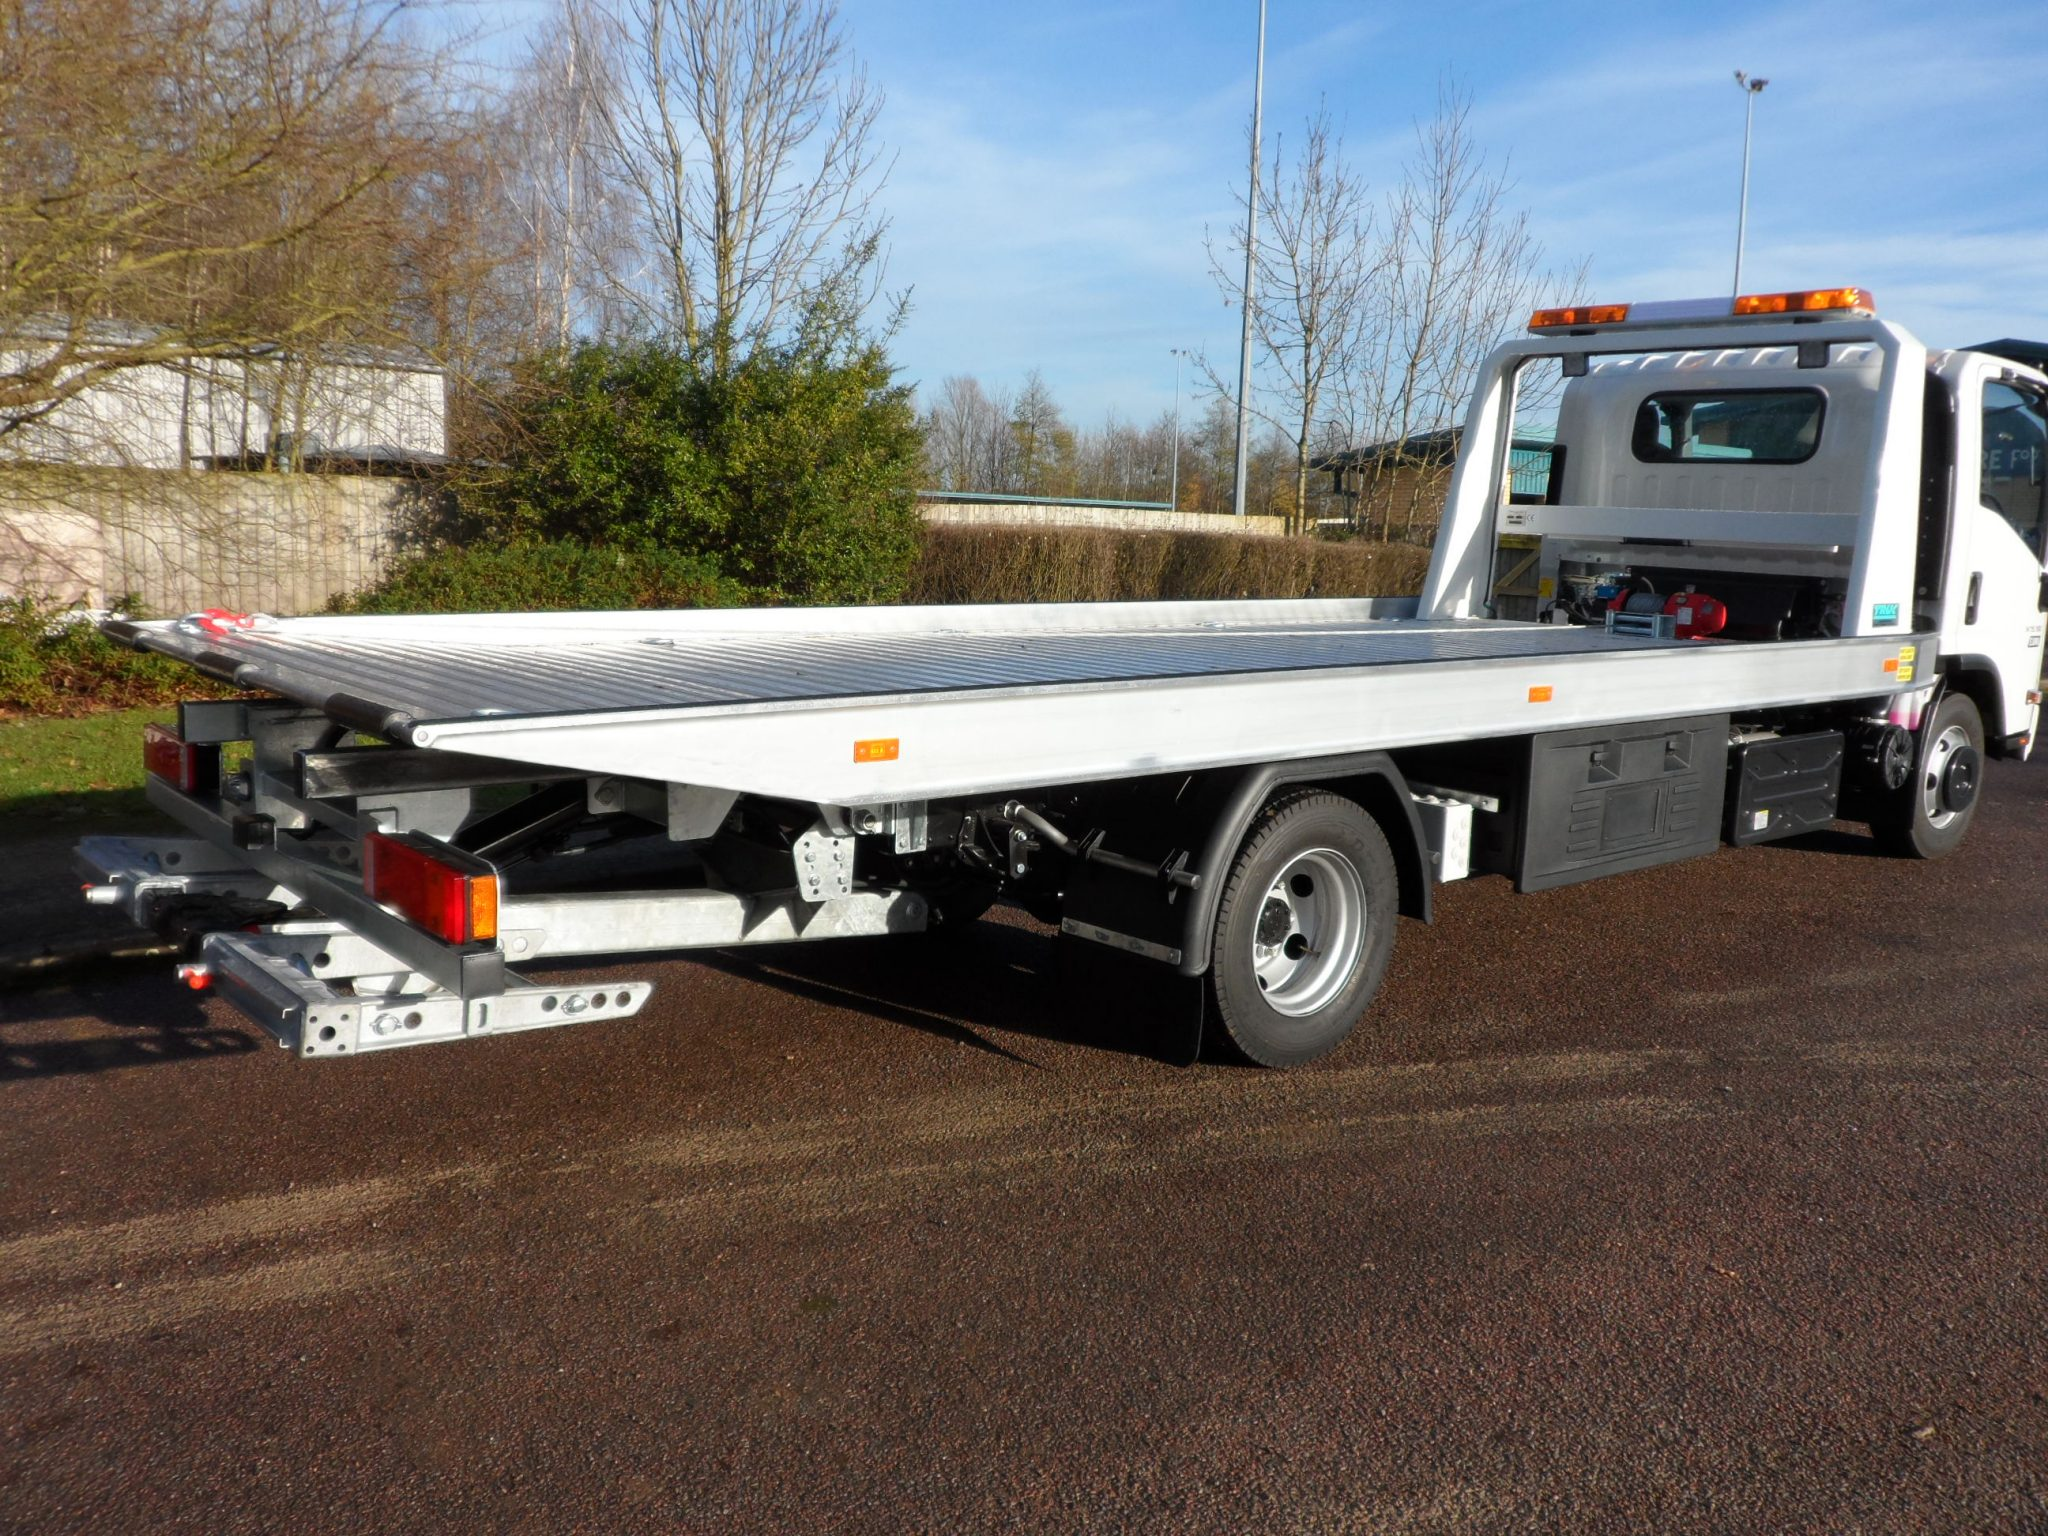 Recovery Truck - Recovery Vehicle - Low Approach Slideback